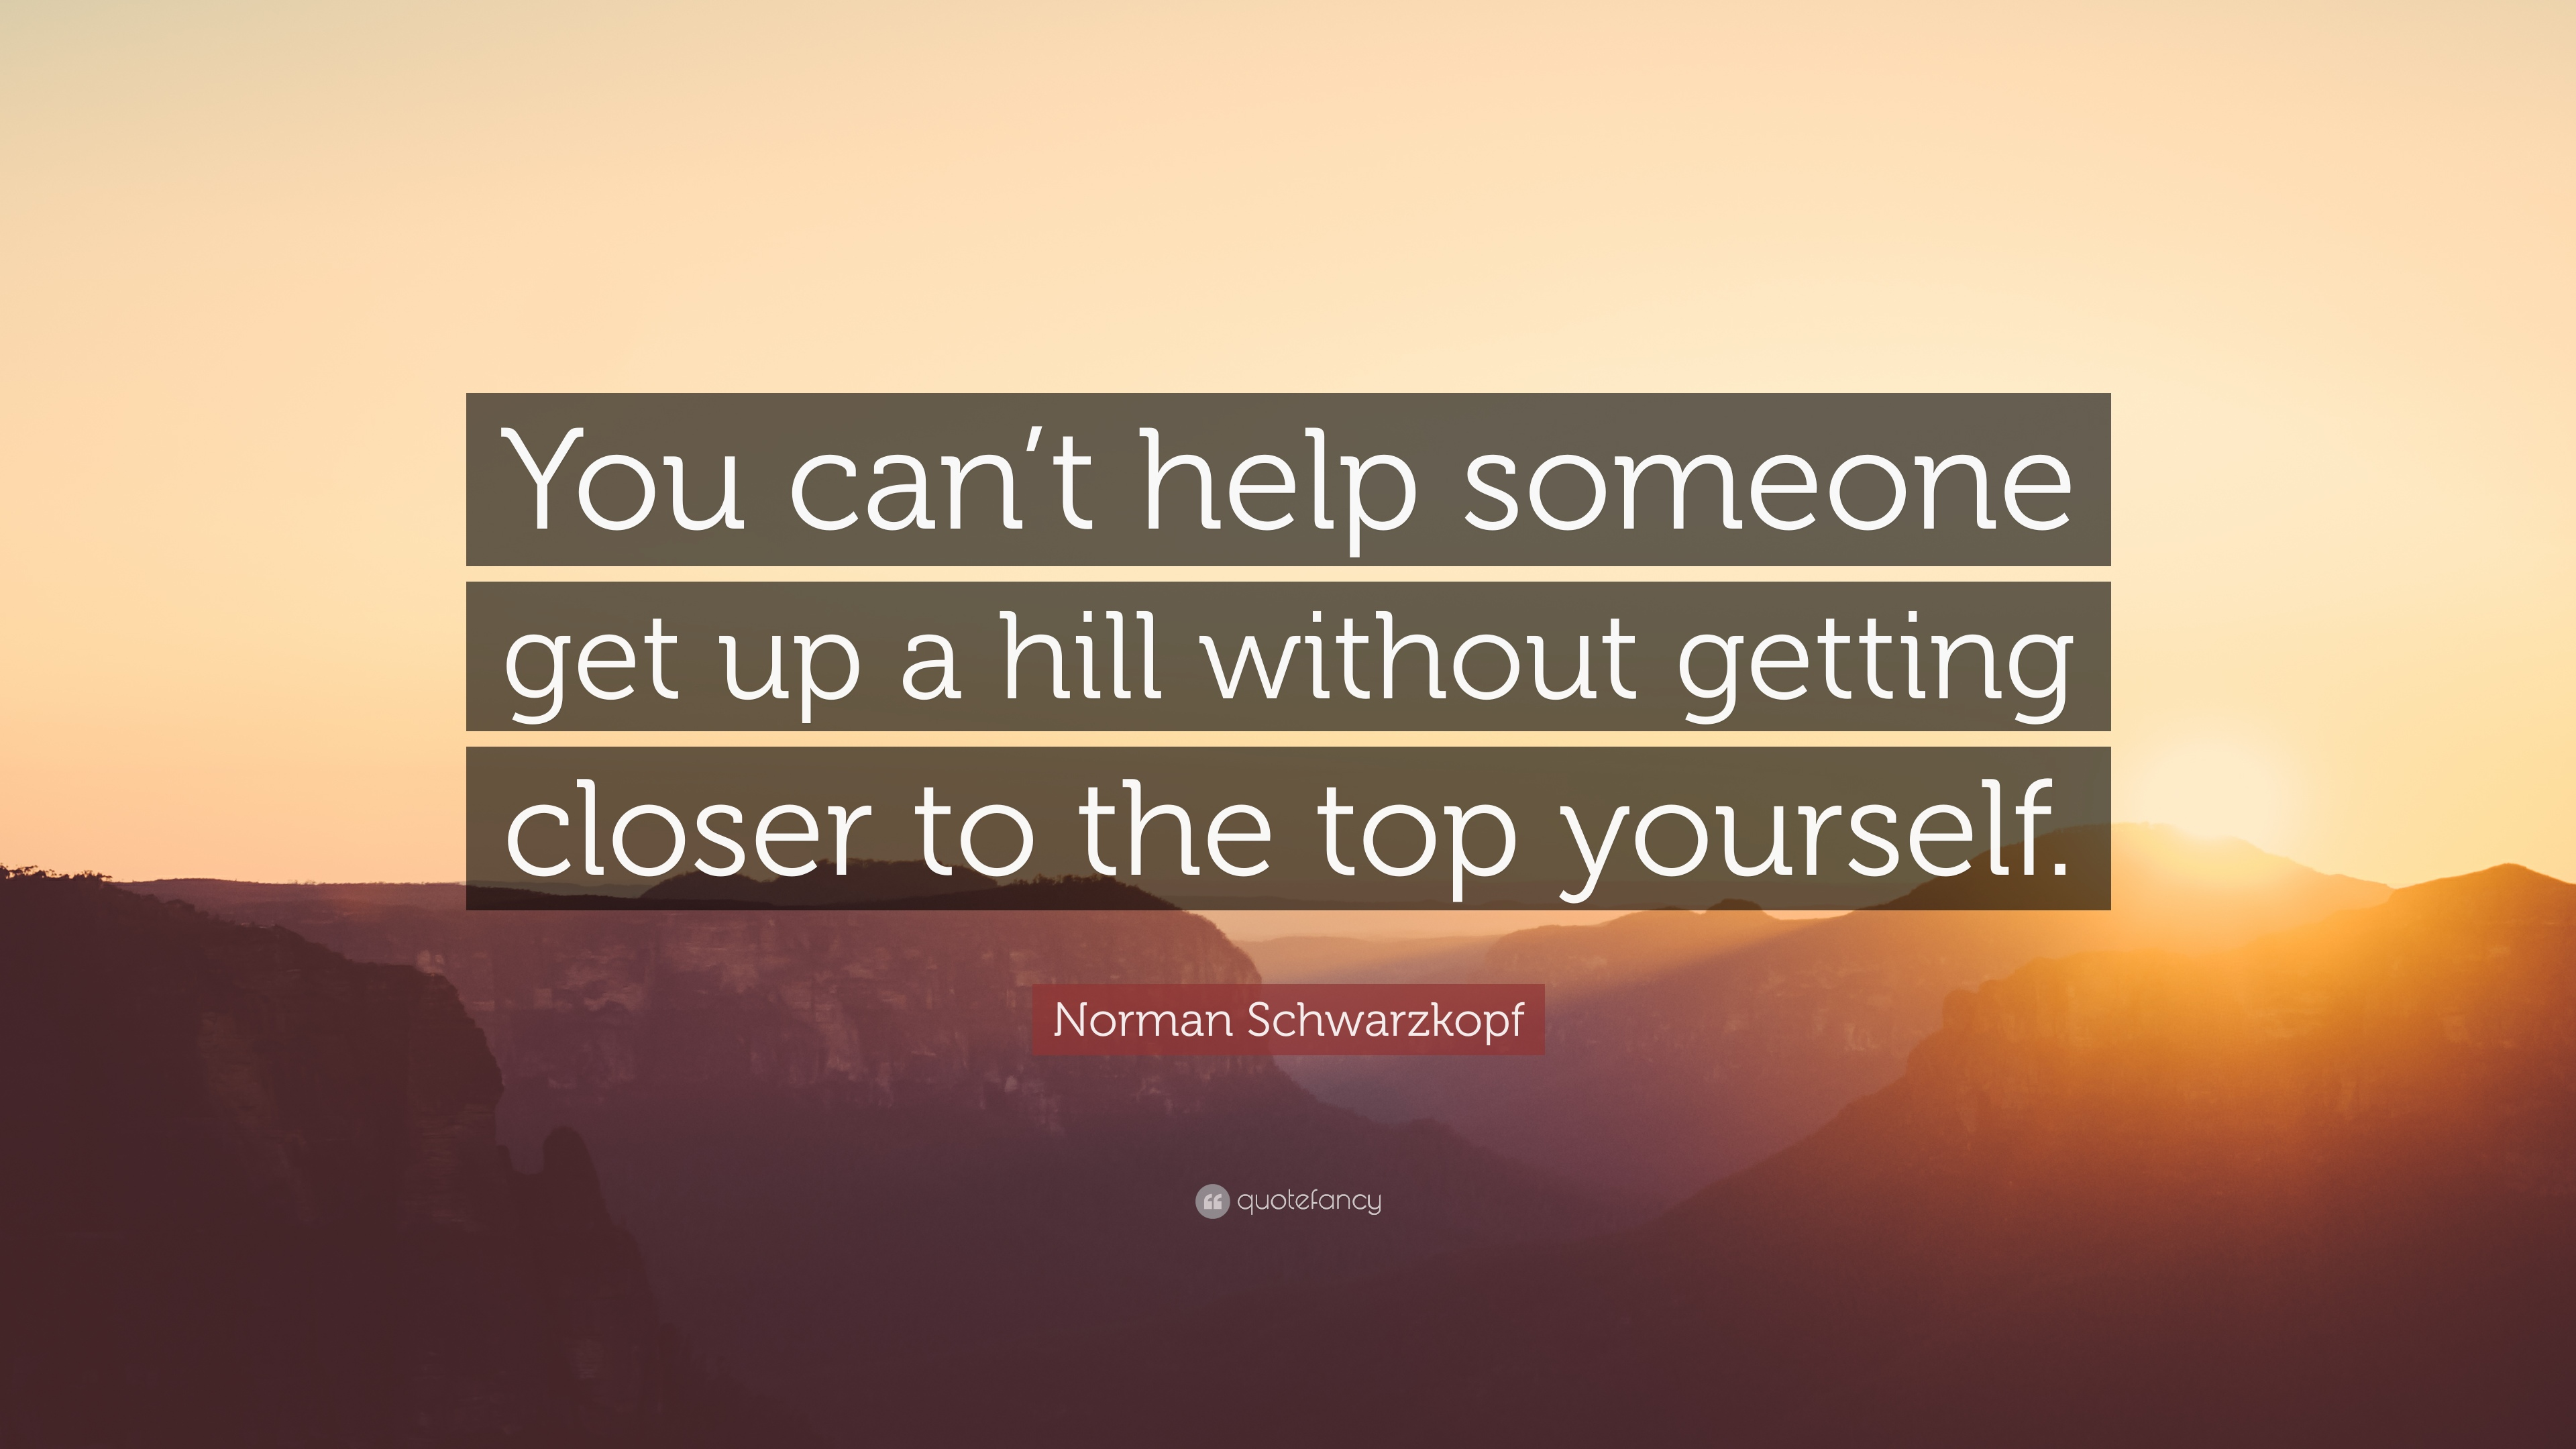 norman schwarzkopf quote you can t help someone get up a hill